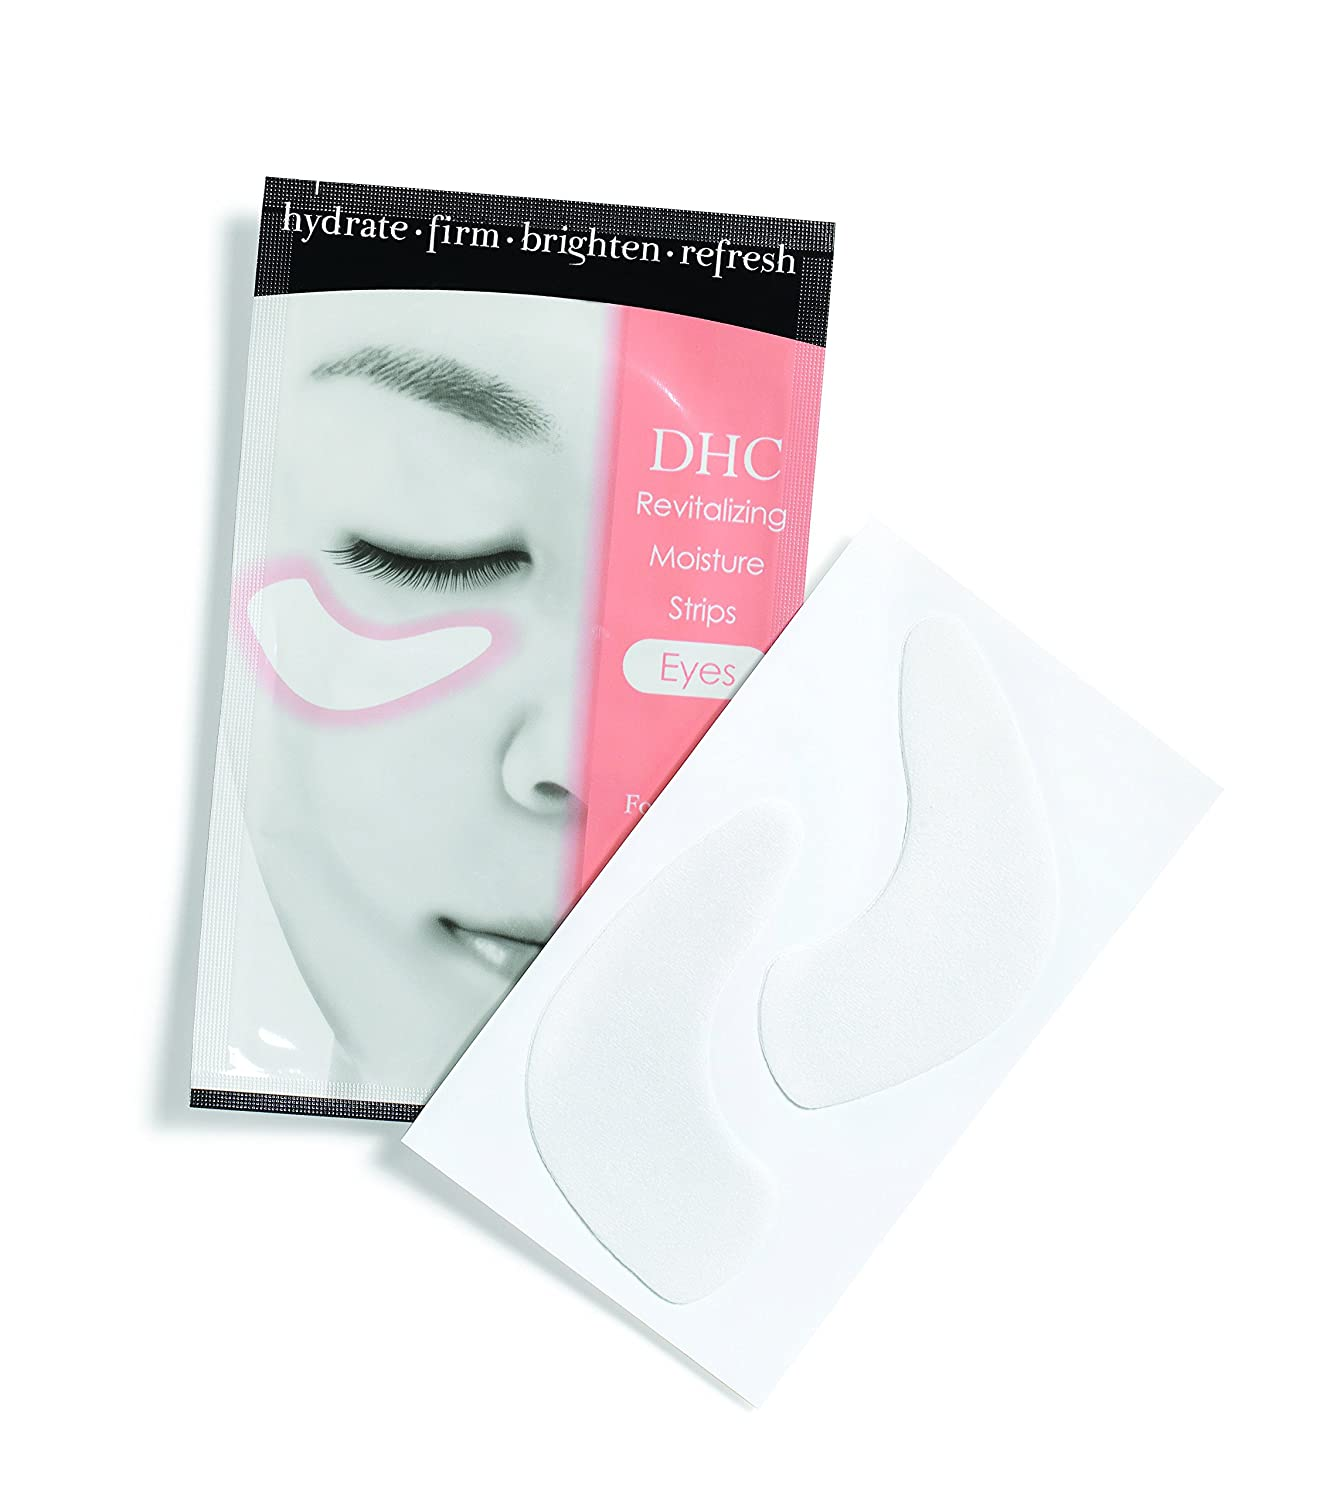 DHC Revive Tired Eyes, includes DHC Revitalizing Moisture Strips Eyes, 6 applications and DHC Eye Bright, 0.52 oz.